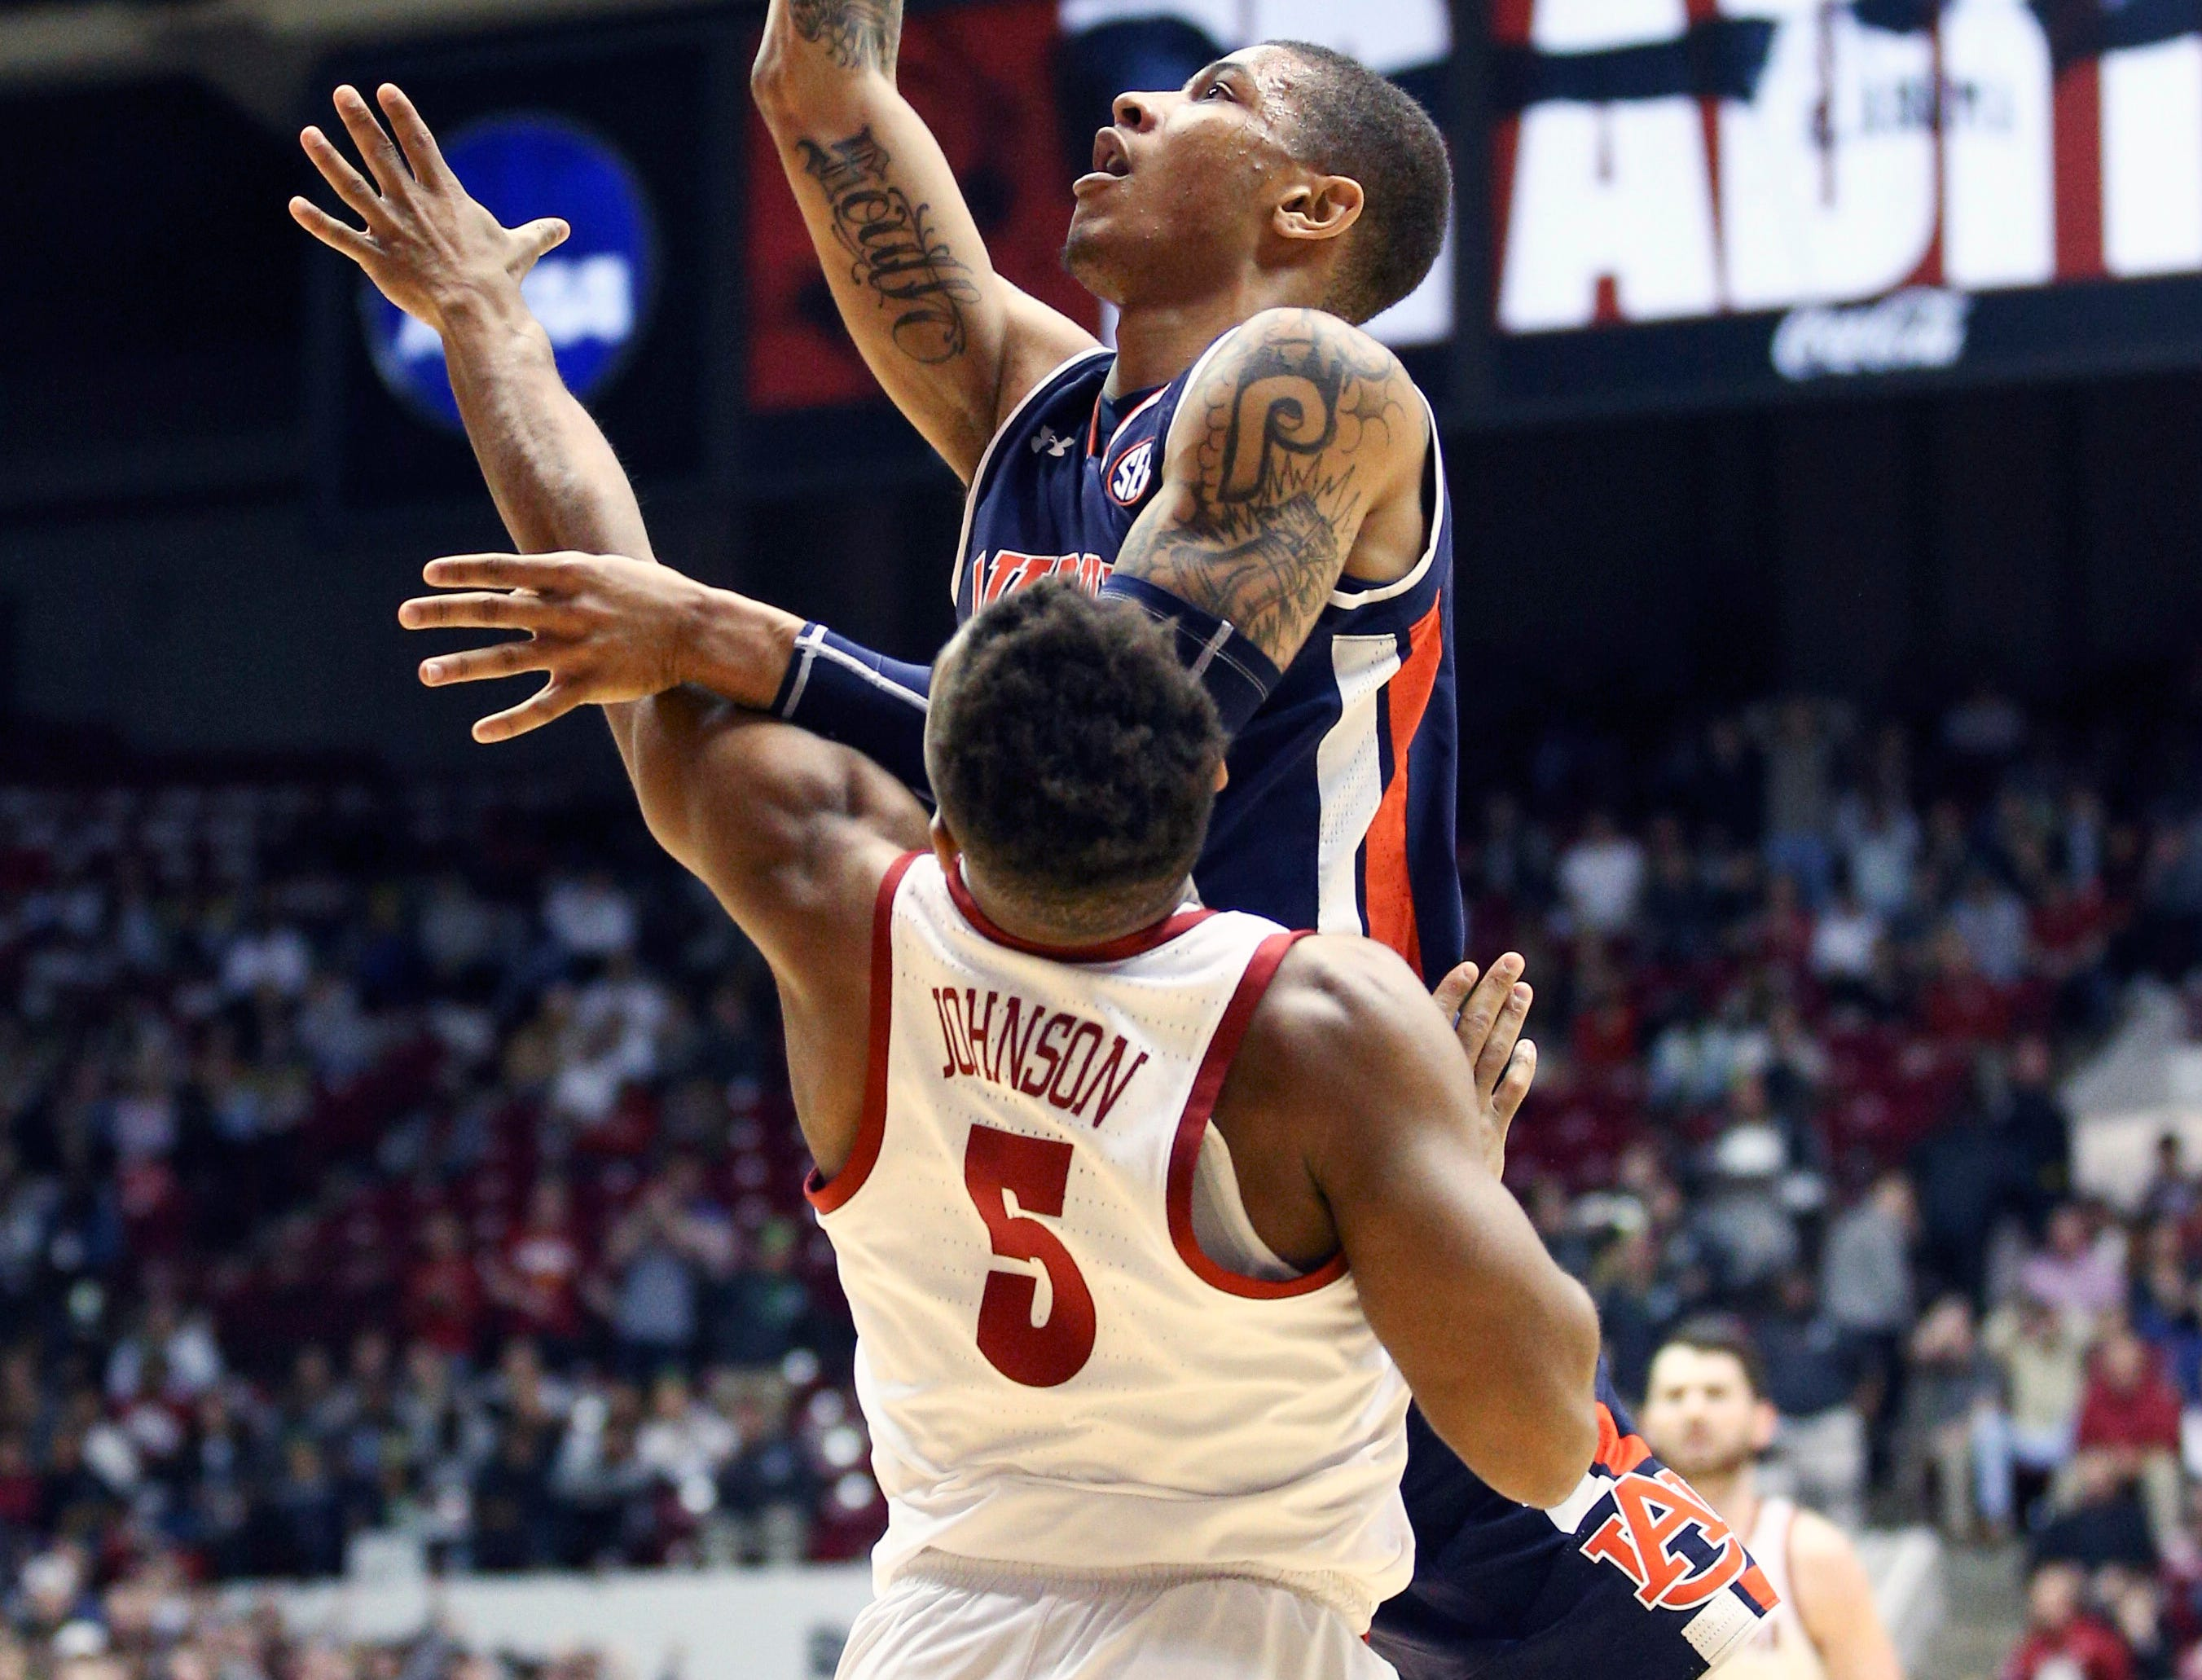 Mar 5, 2019; Tuscaloosa, AL, USA; Auburn Tigers forward Danjel Purifoy (3) goes to the basket as Alabama Crimson Tide guard Avery Johnson Jr. (5) defends during the first half at Coleman Coliseum. Mandatory Credit: Marvin Gentry-USA TODAY Sports